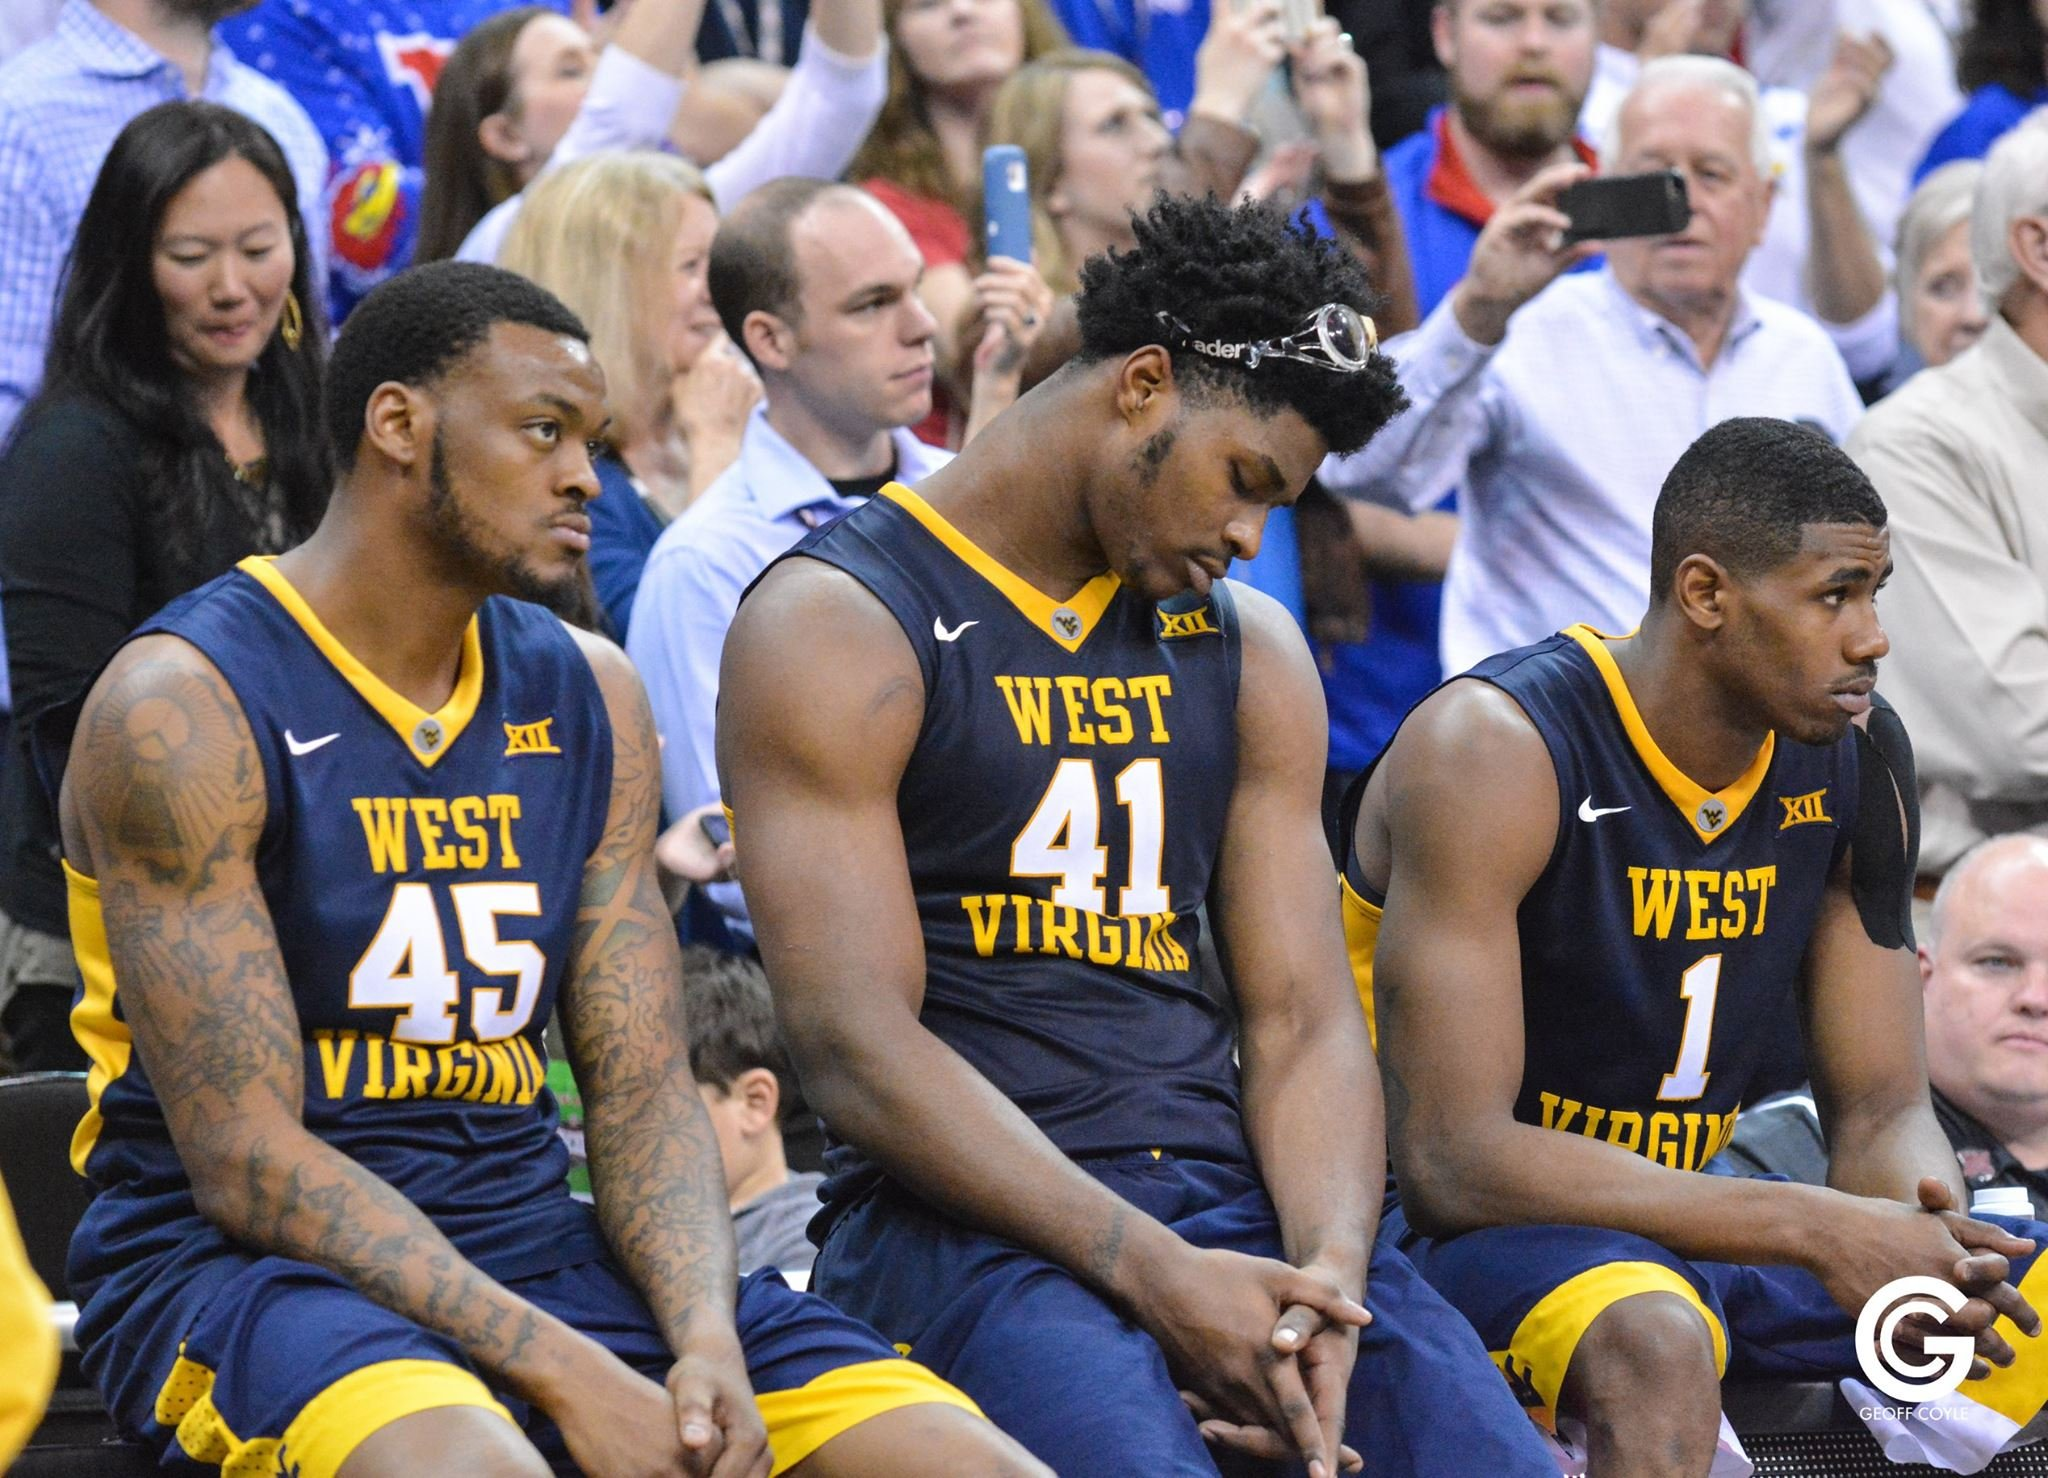 WVU players Elijah Macon, Devin Williams and Jonathan Holton watch the trophy presentation after suffering an 81-71 loss to Kansas in the 2016 Big 12 Championship. (PHOTO: Geoff Coyle)